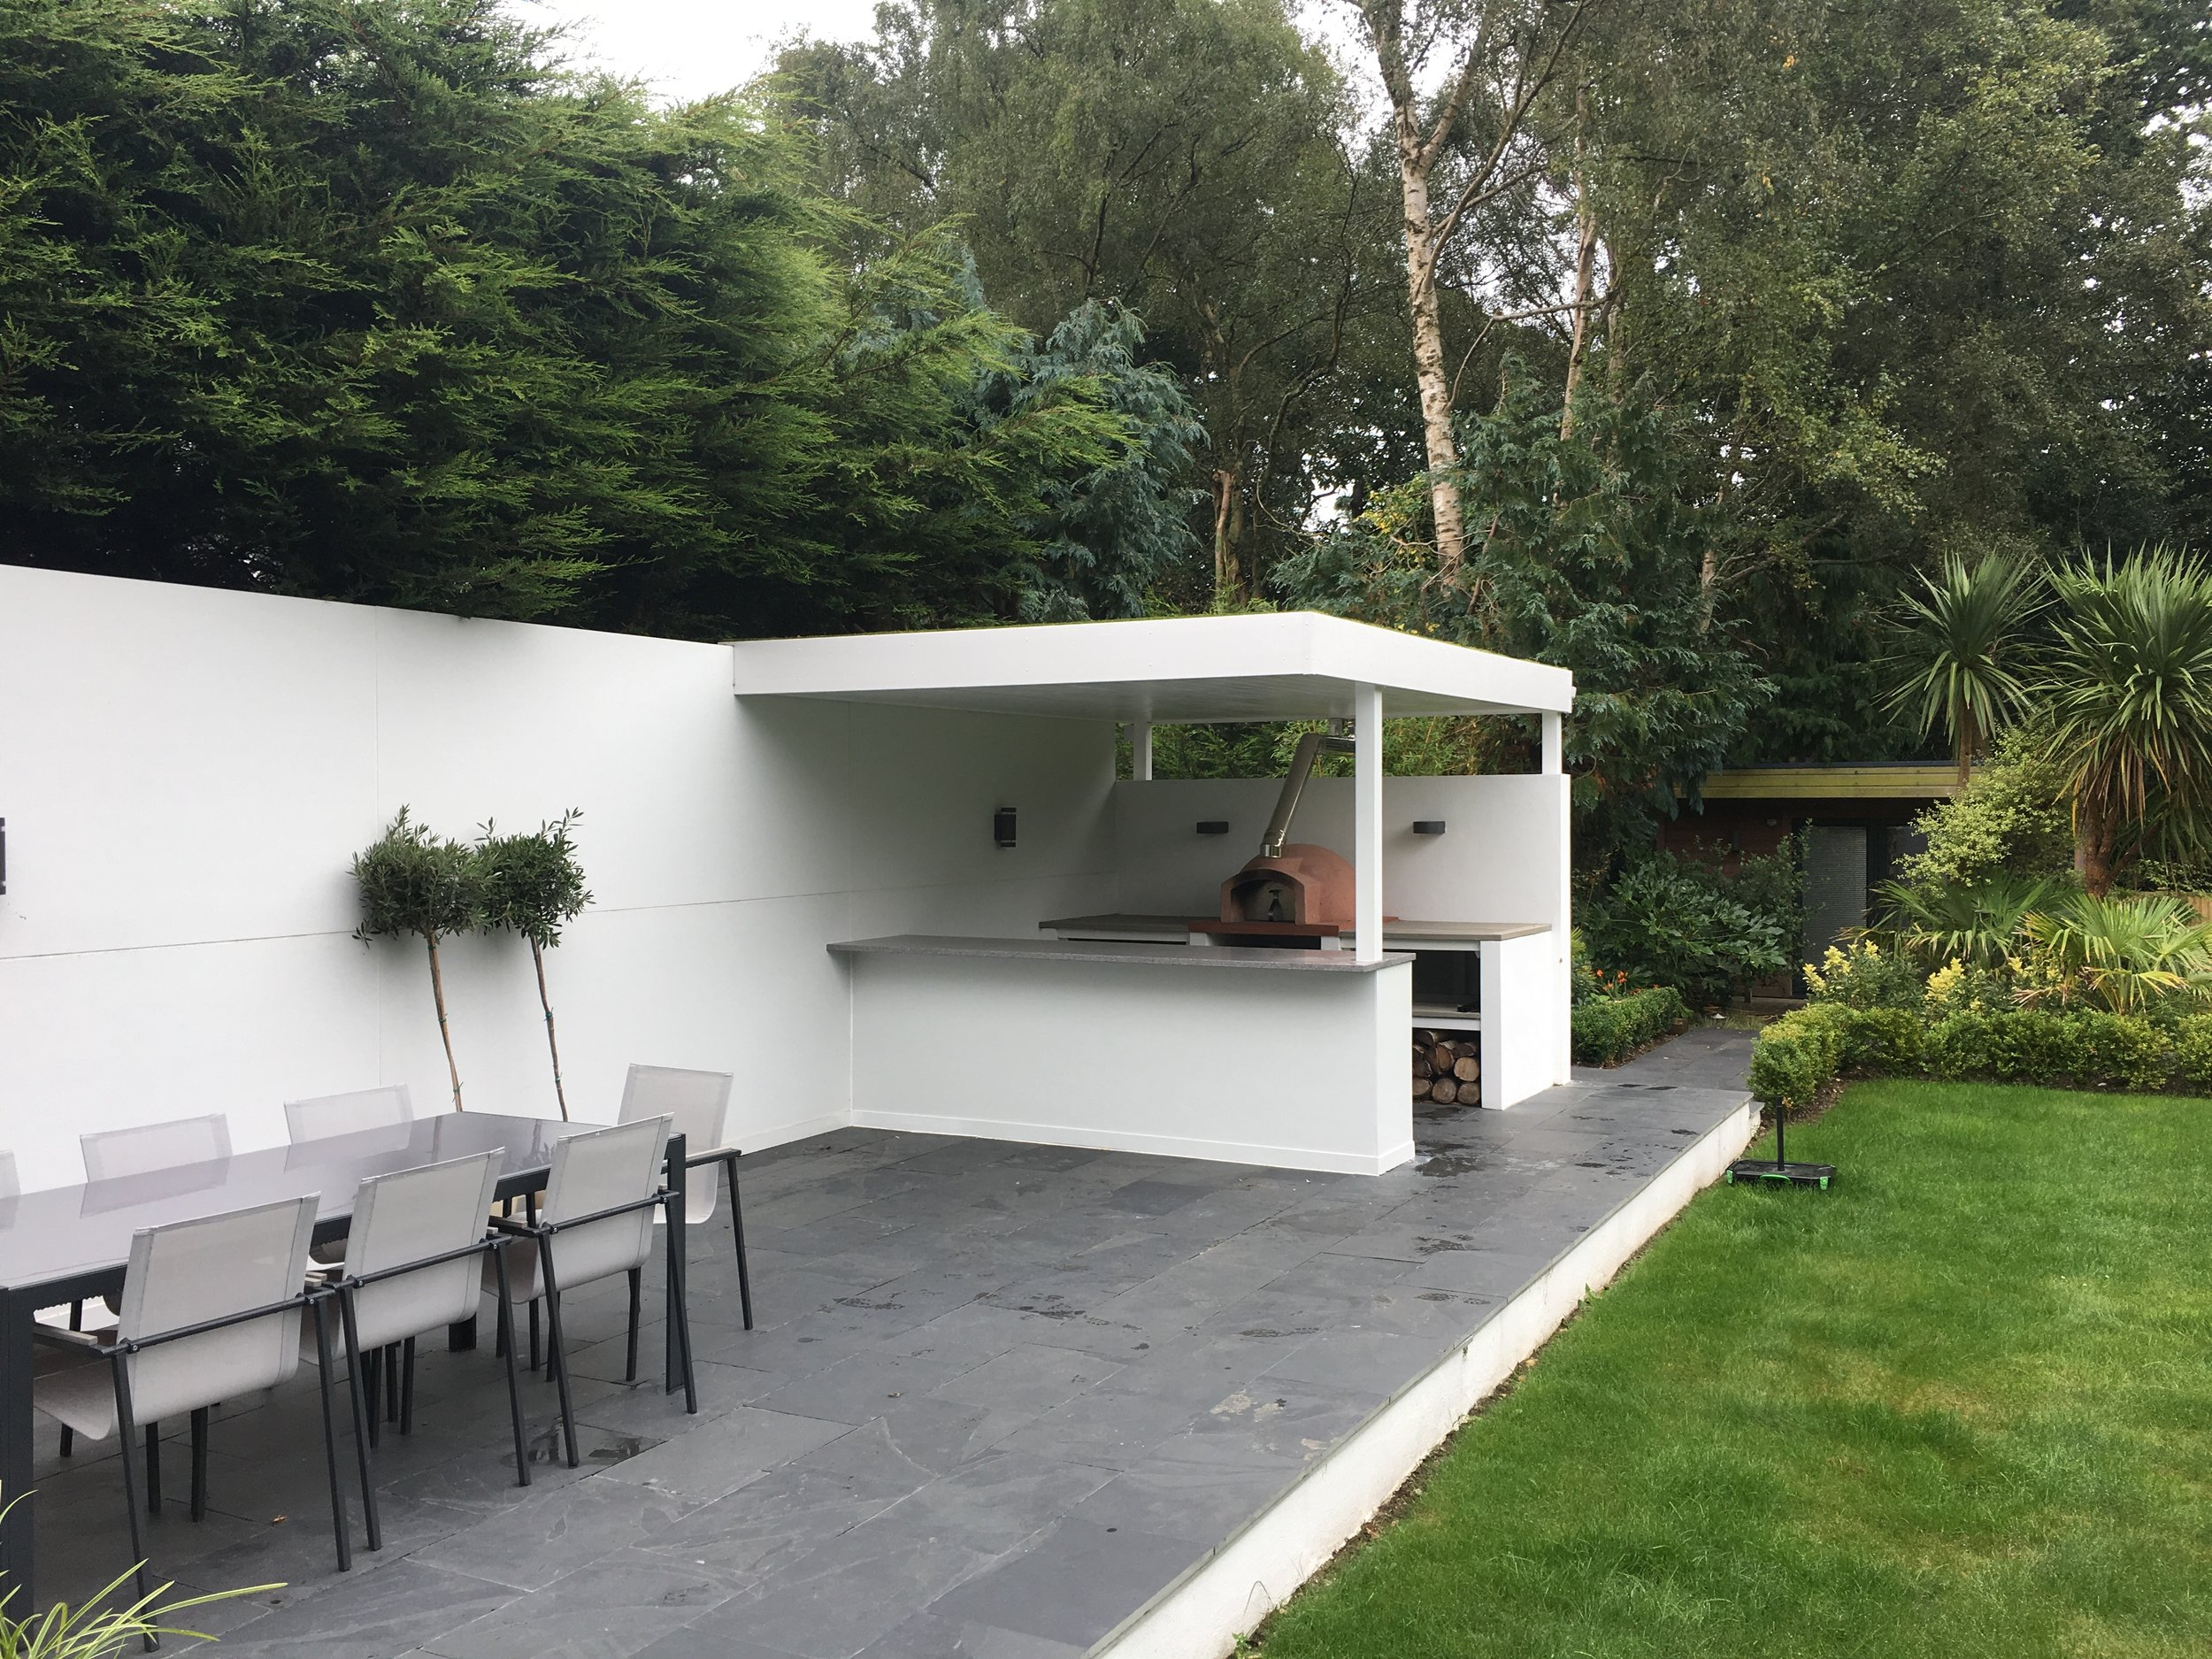 Pizza Oven Area with Bar